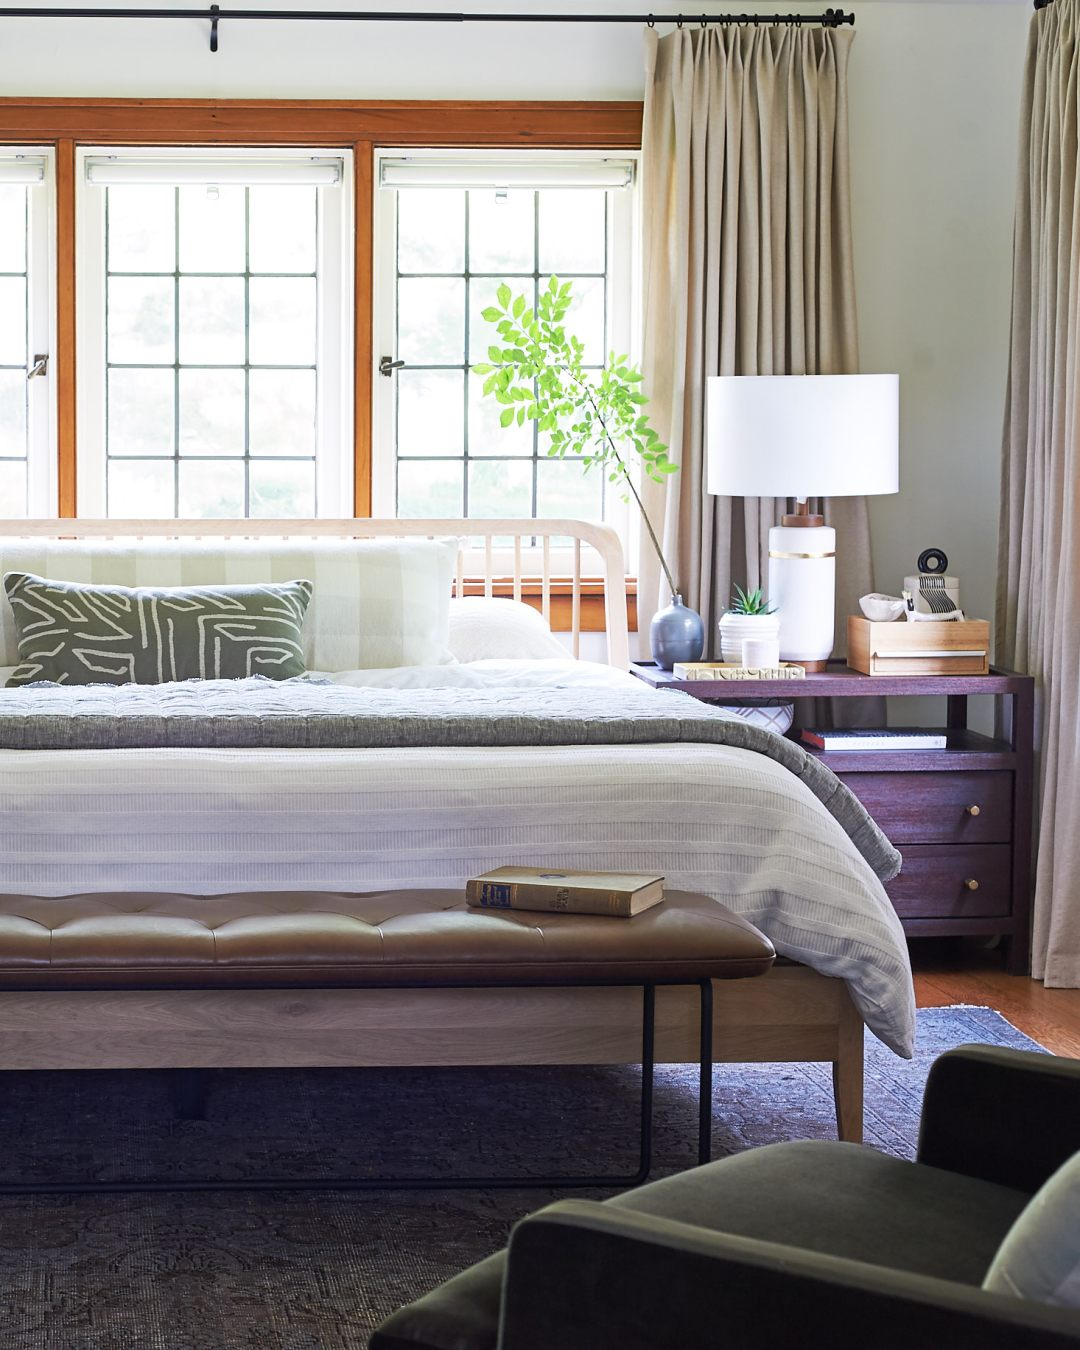 Bedroom with bench at foot of bed